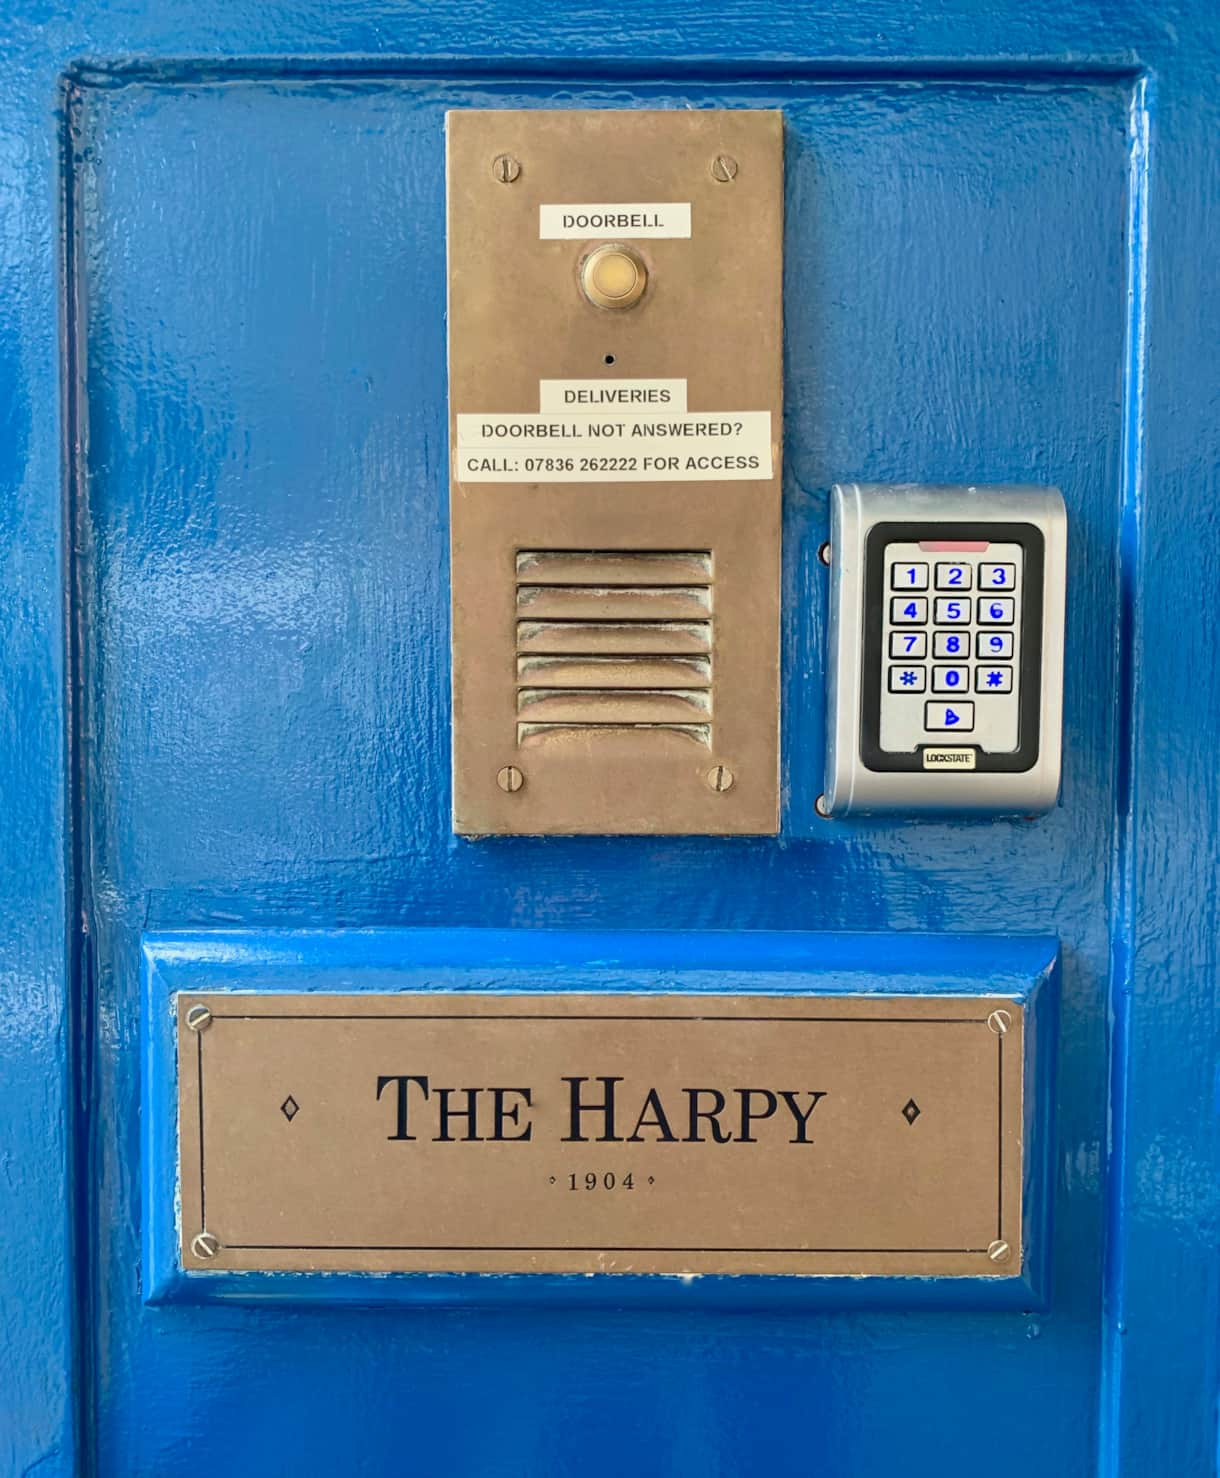 The Harpy wi-fi enabled entryphone